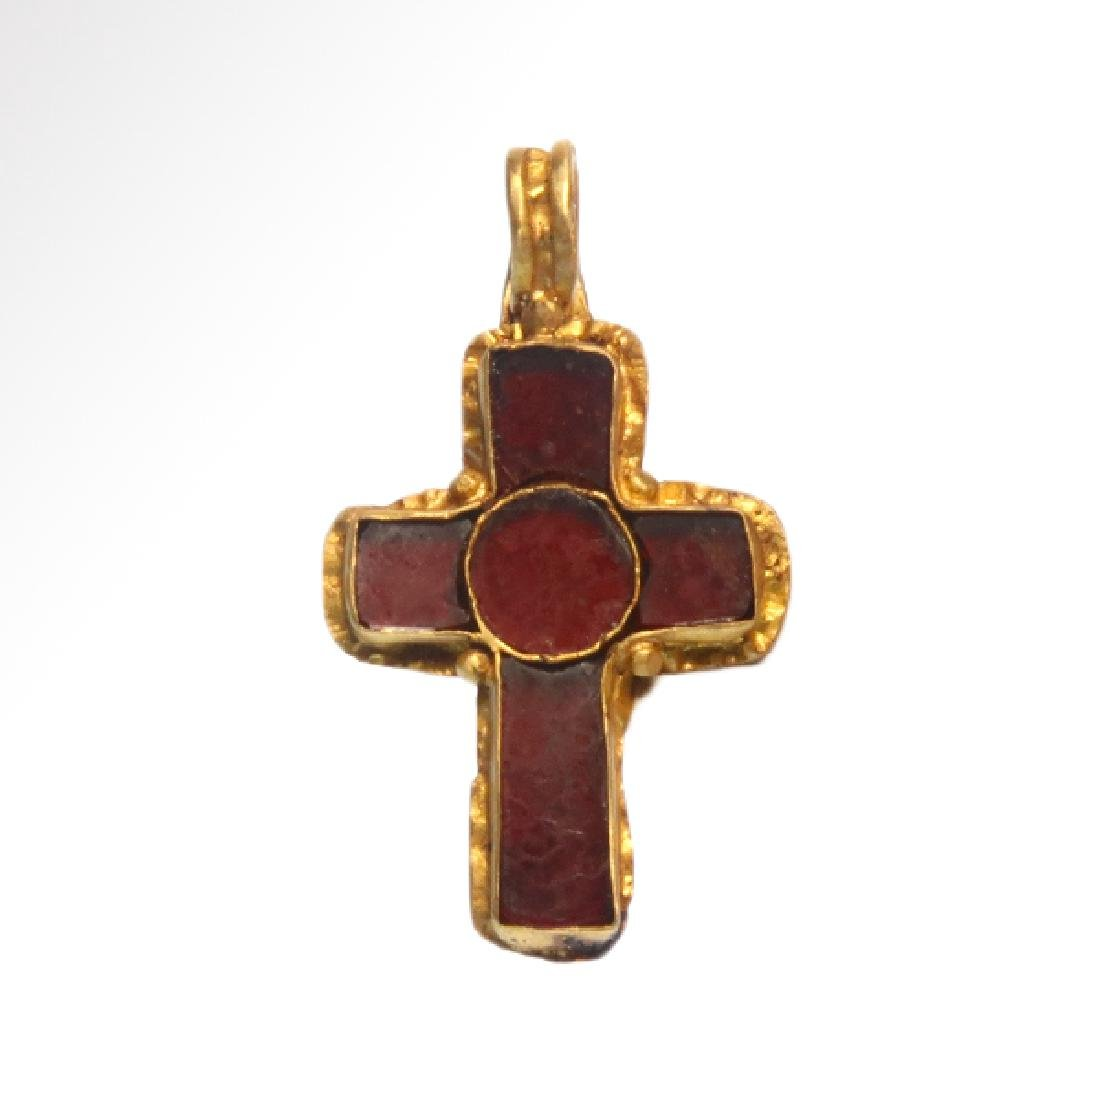 Medieval Gold and Garnet Cloisonné Cross, c. 7th-10th